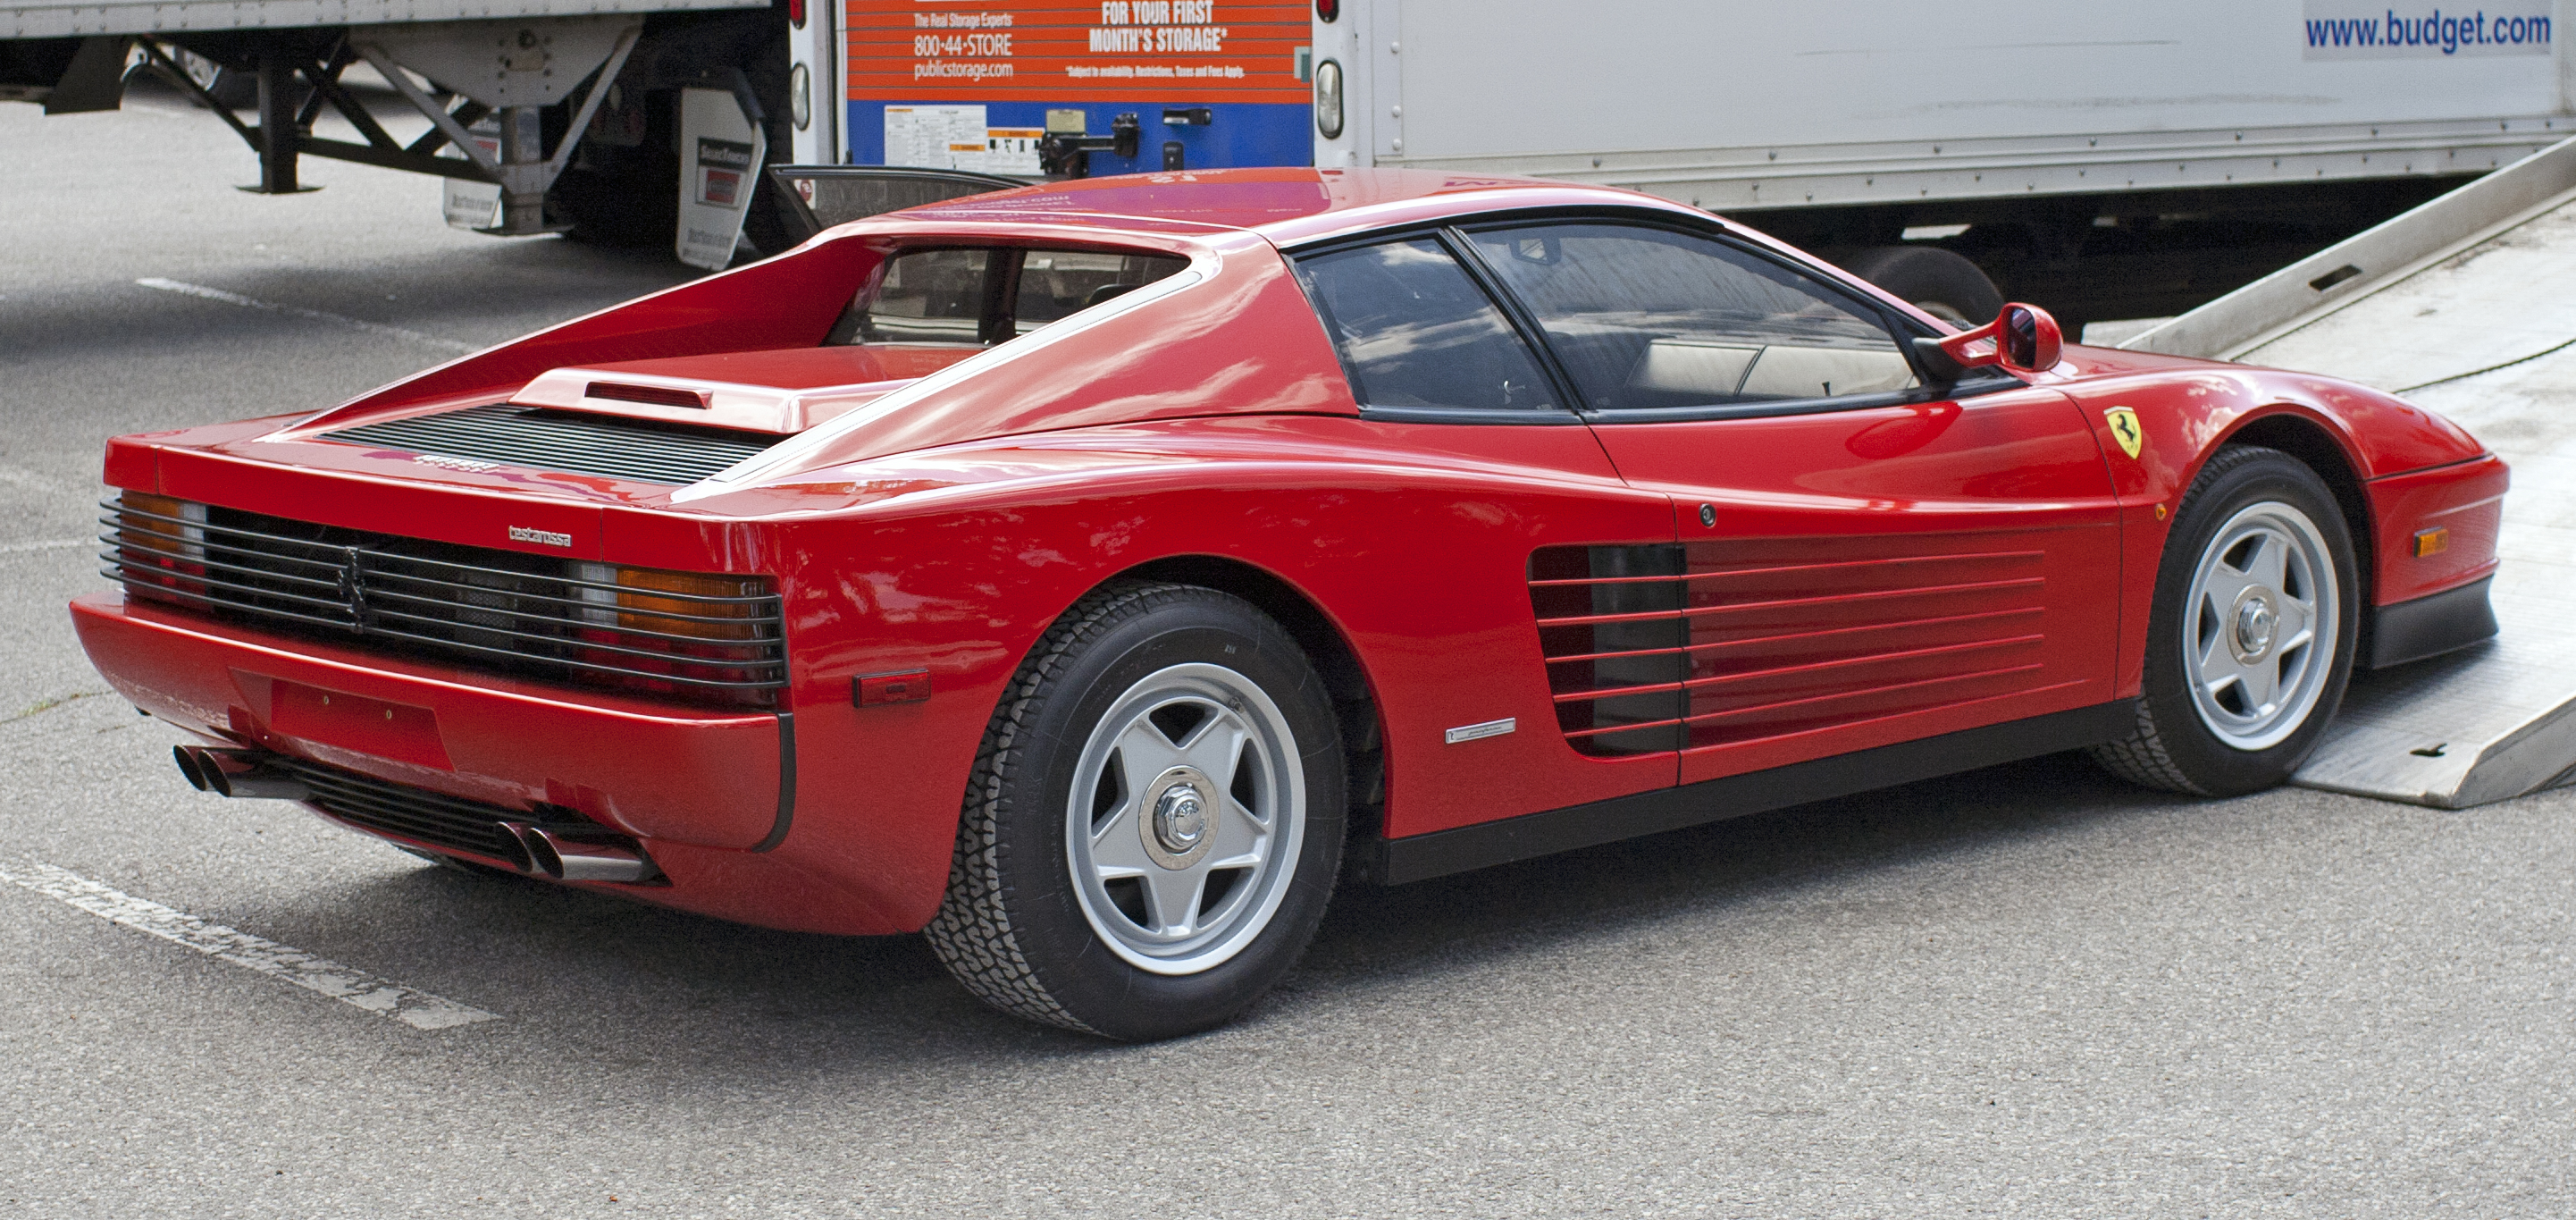 1986_Ferrari_Testarossa_being_unloaded.j